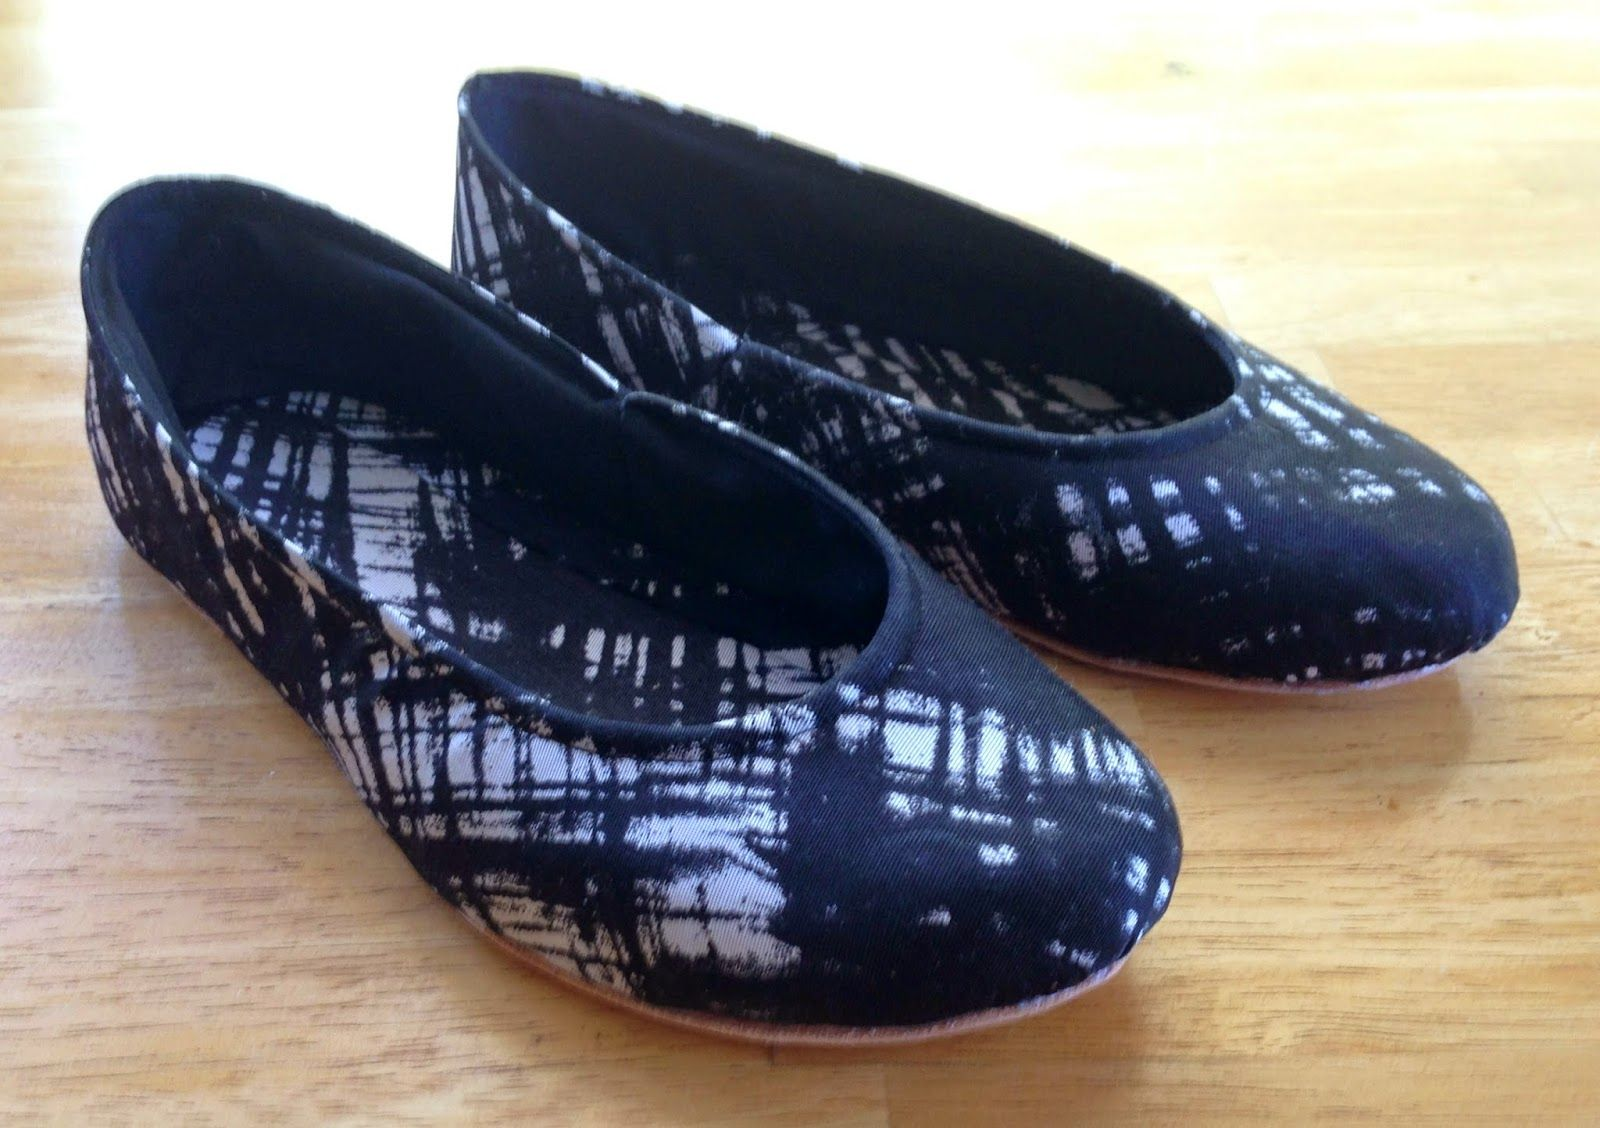 Scared Stitchless: Shoemaking: My second pair of ballet flats, made from following a book